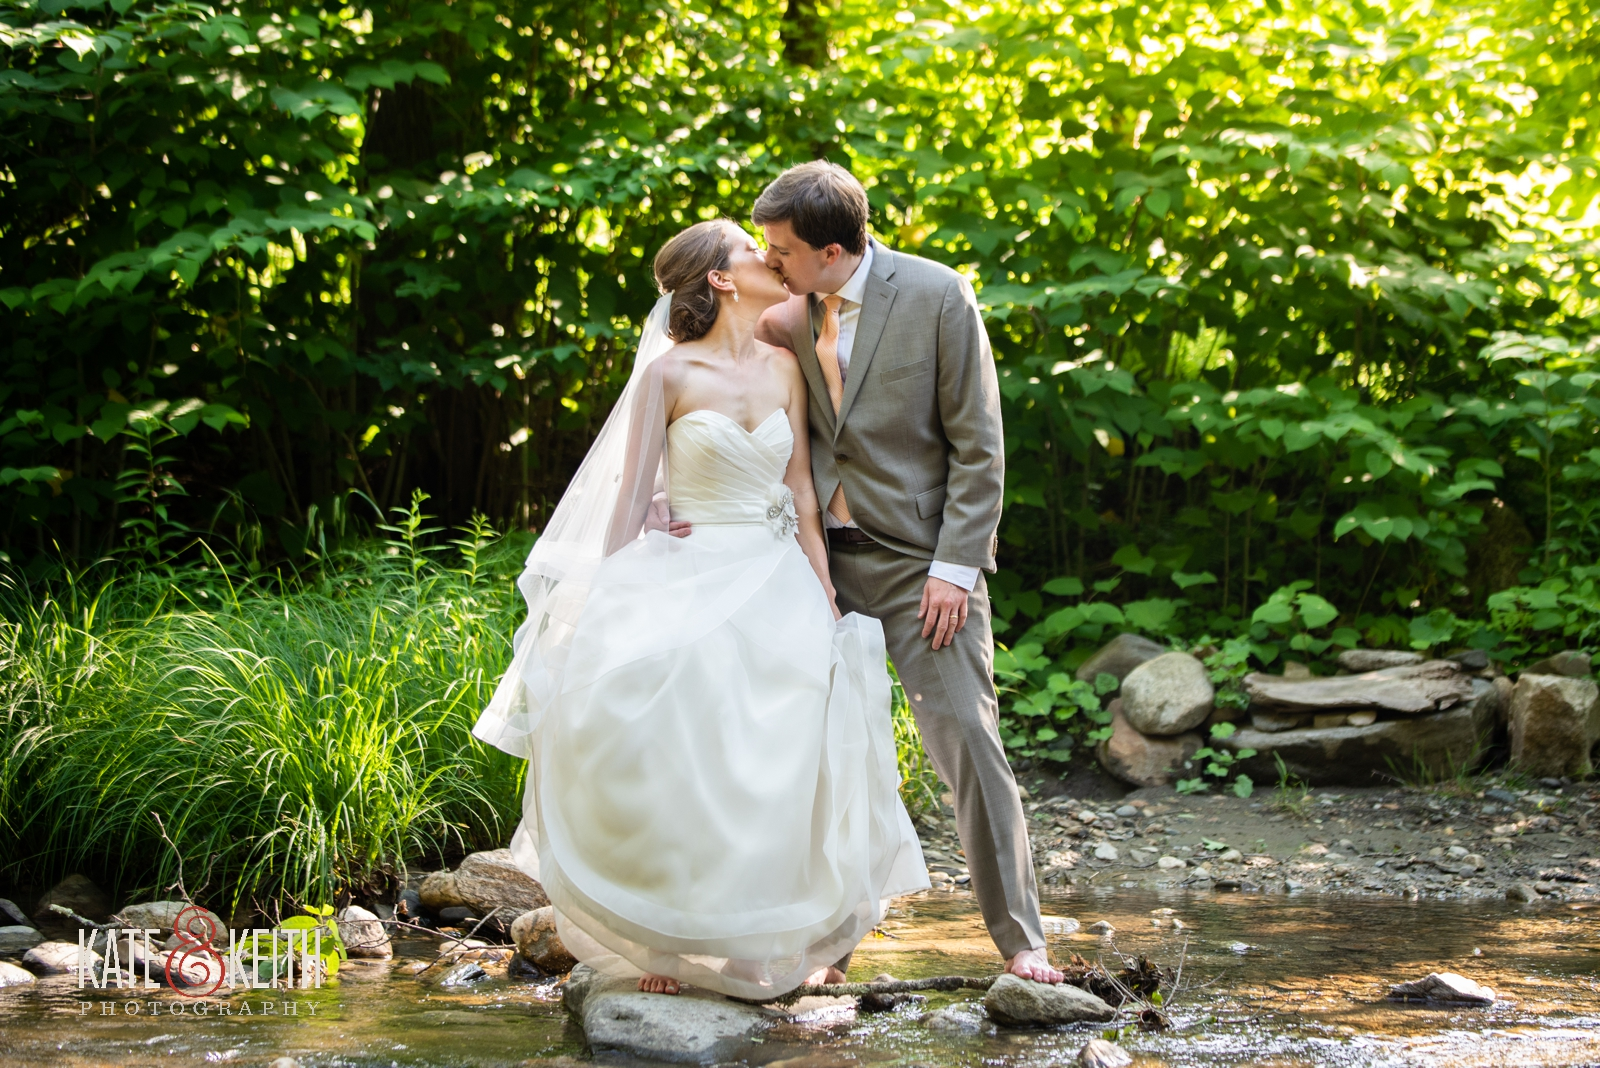 informal barefoot outdoor wedding photos of bride and groom